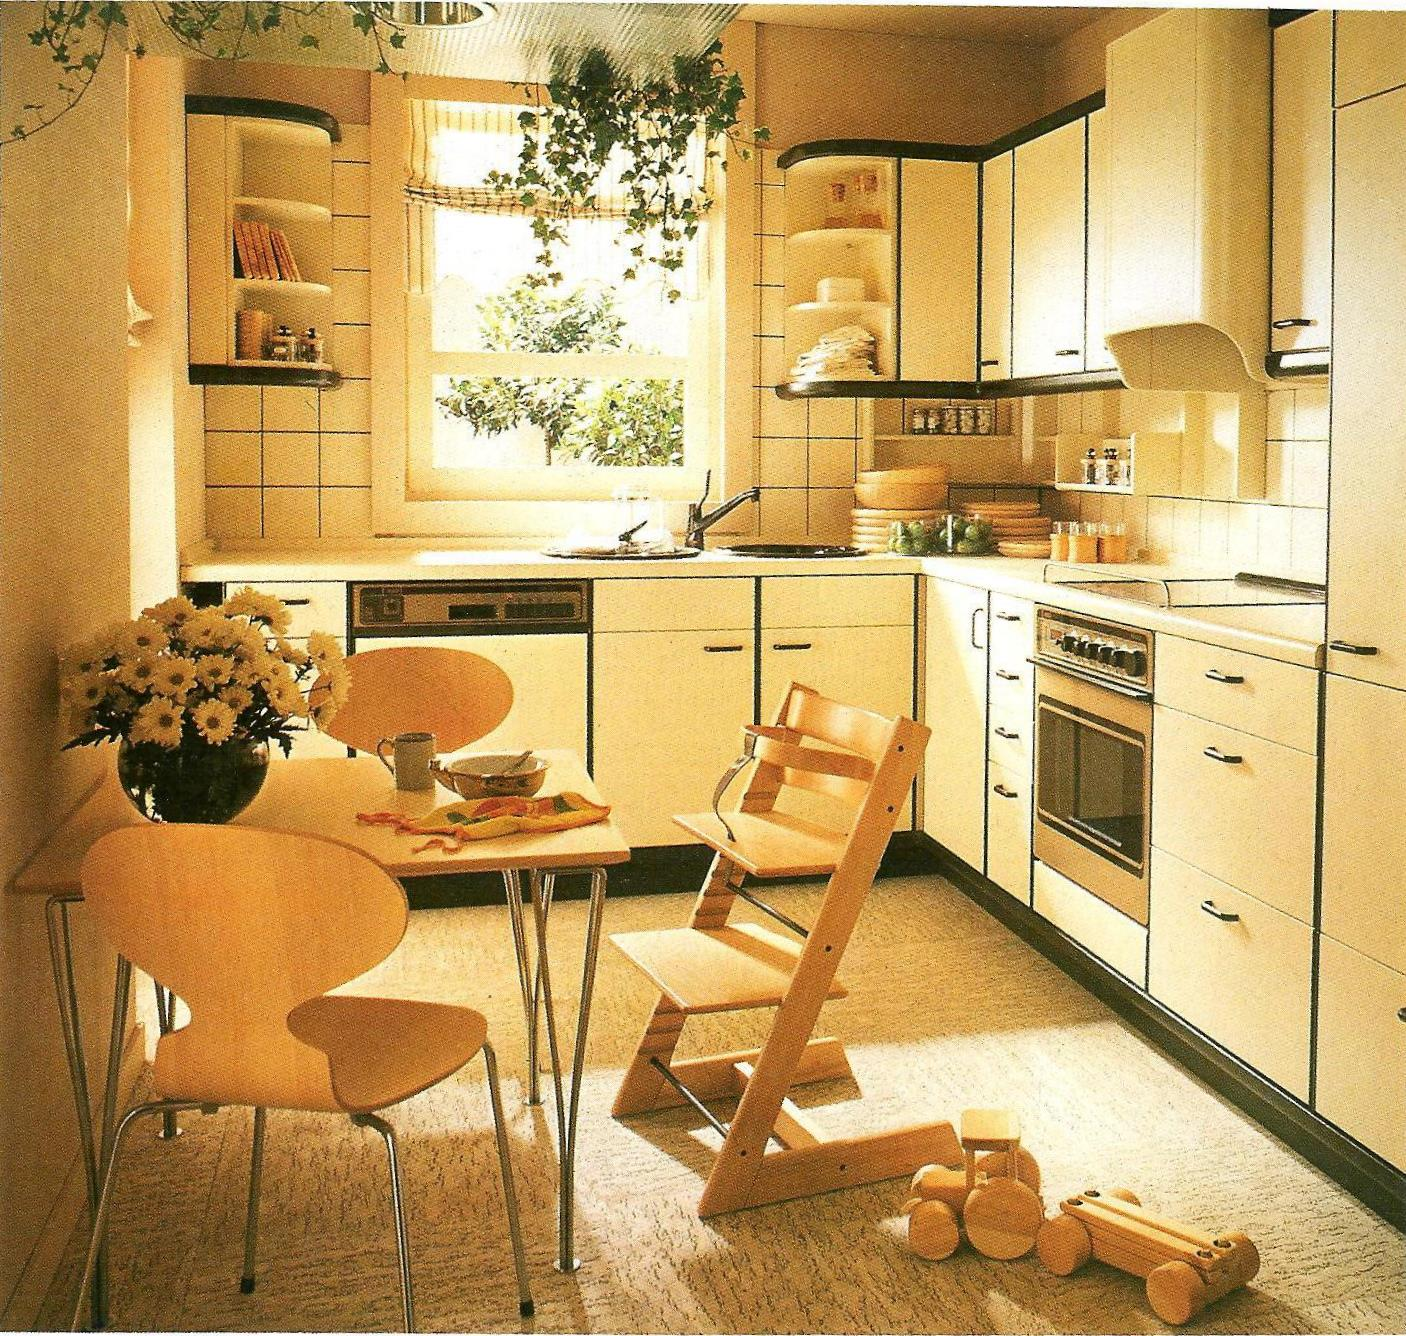 80 Kitchen Design Remodeling Ideas: The Fantasy Decorator: The Retro Decorator